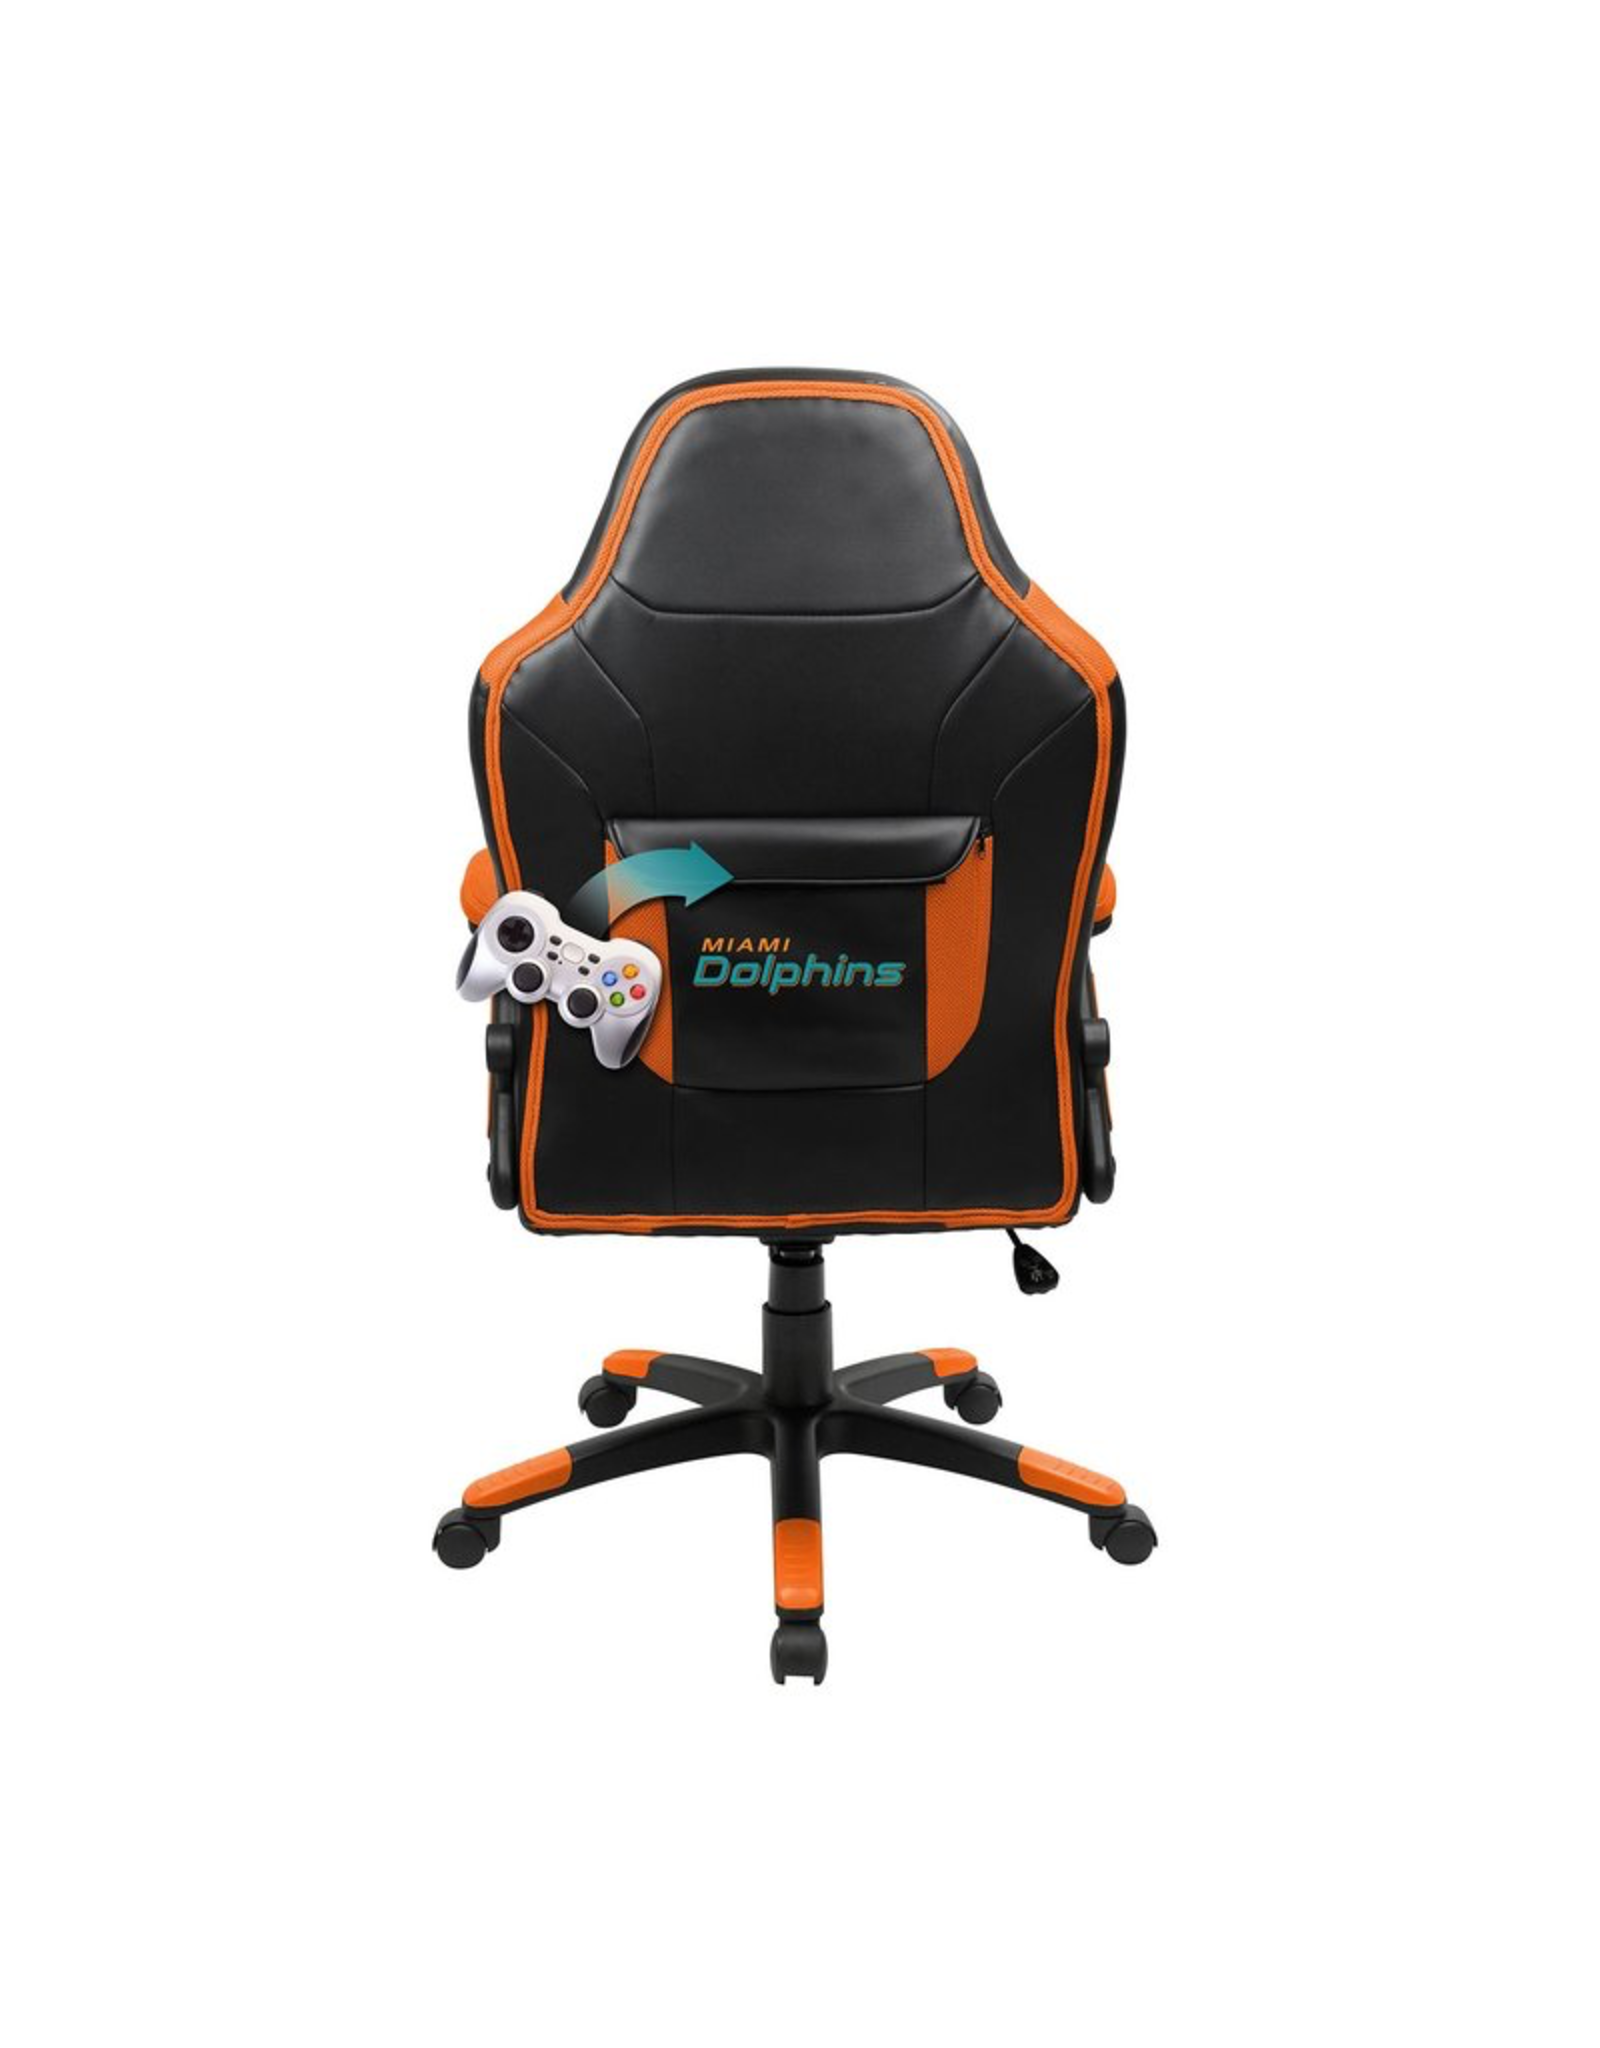 IMPERIAL Miami Dolphins Oversized Gaming/Office Chair